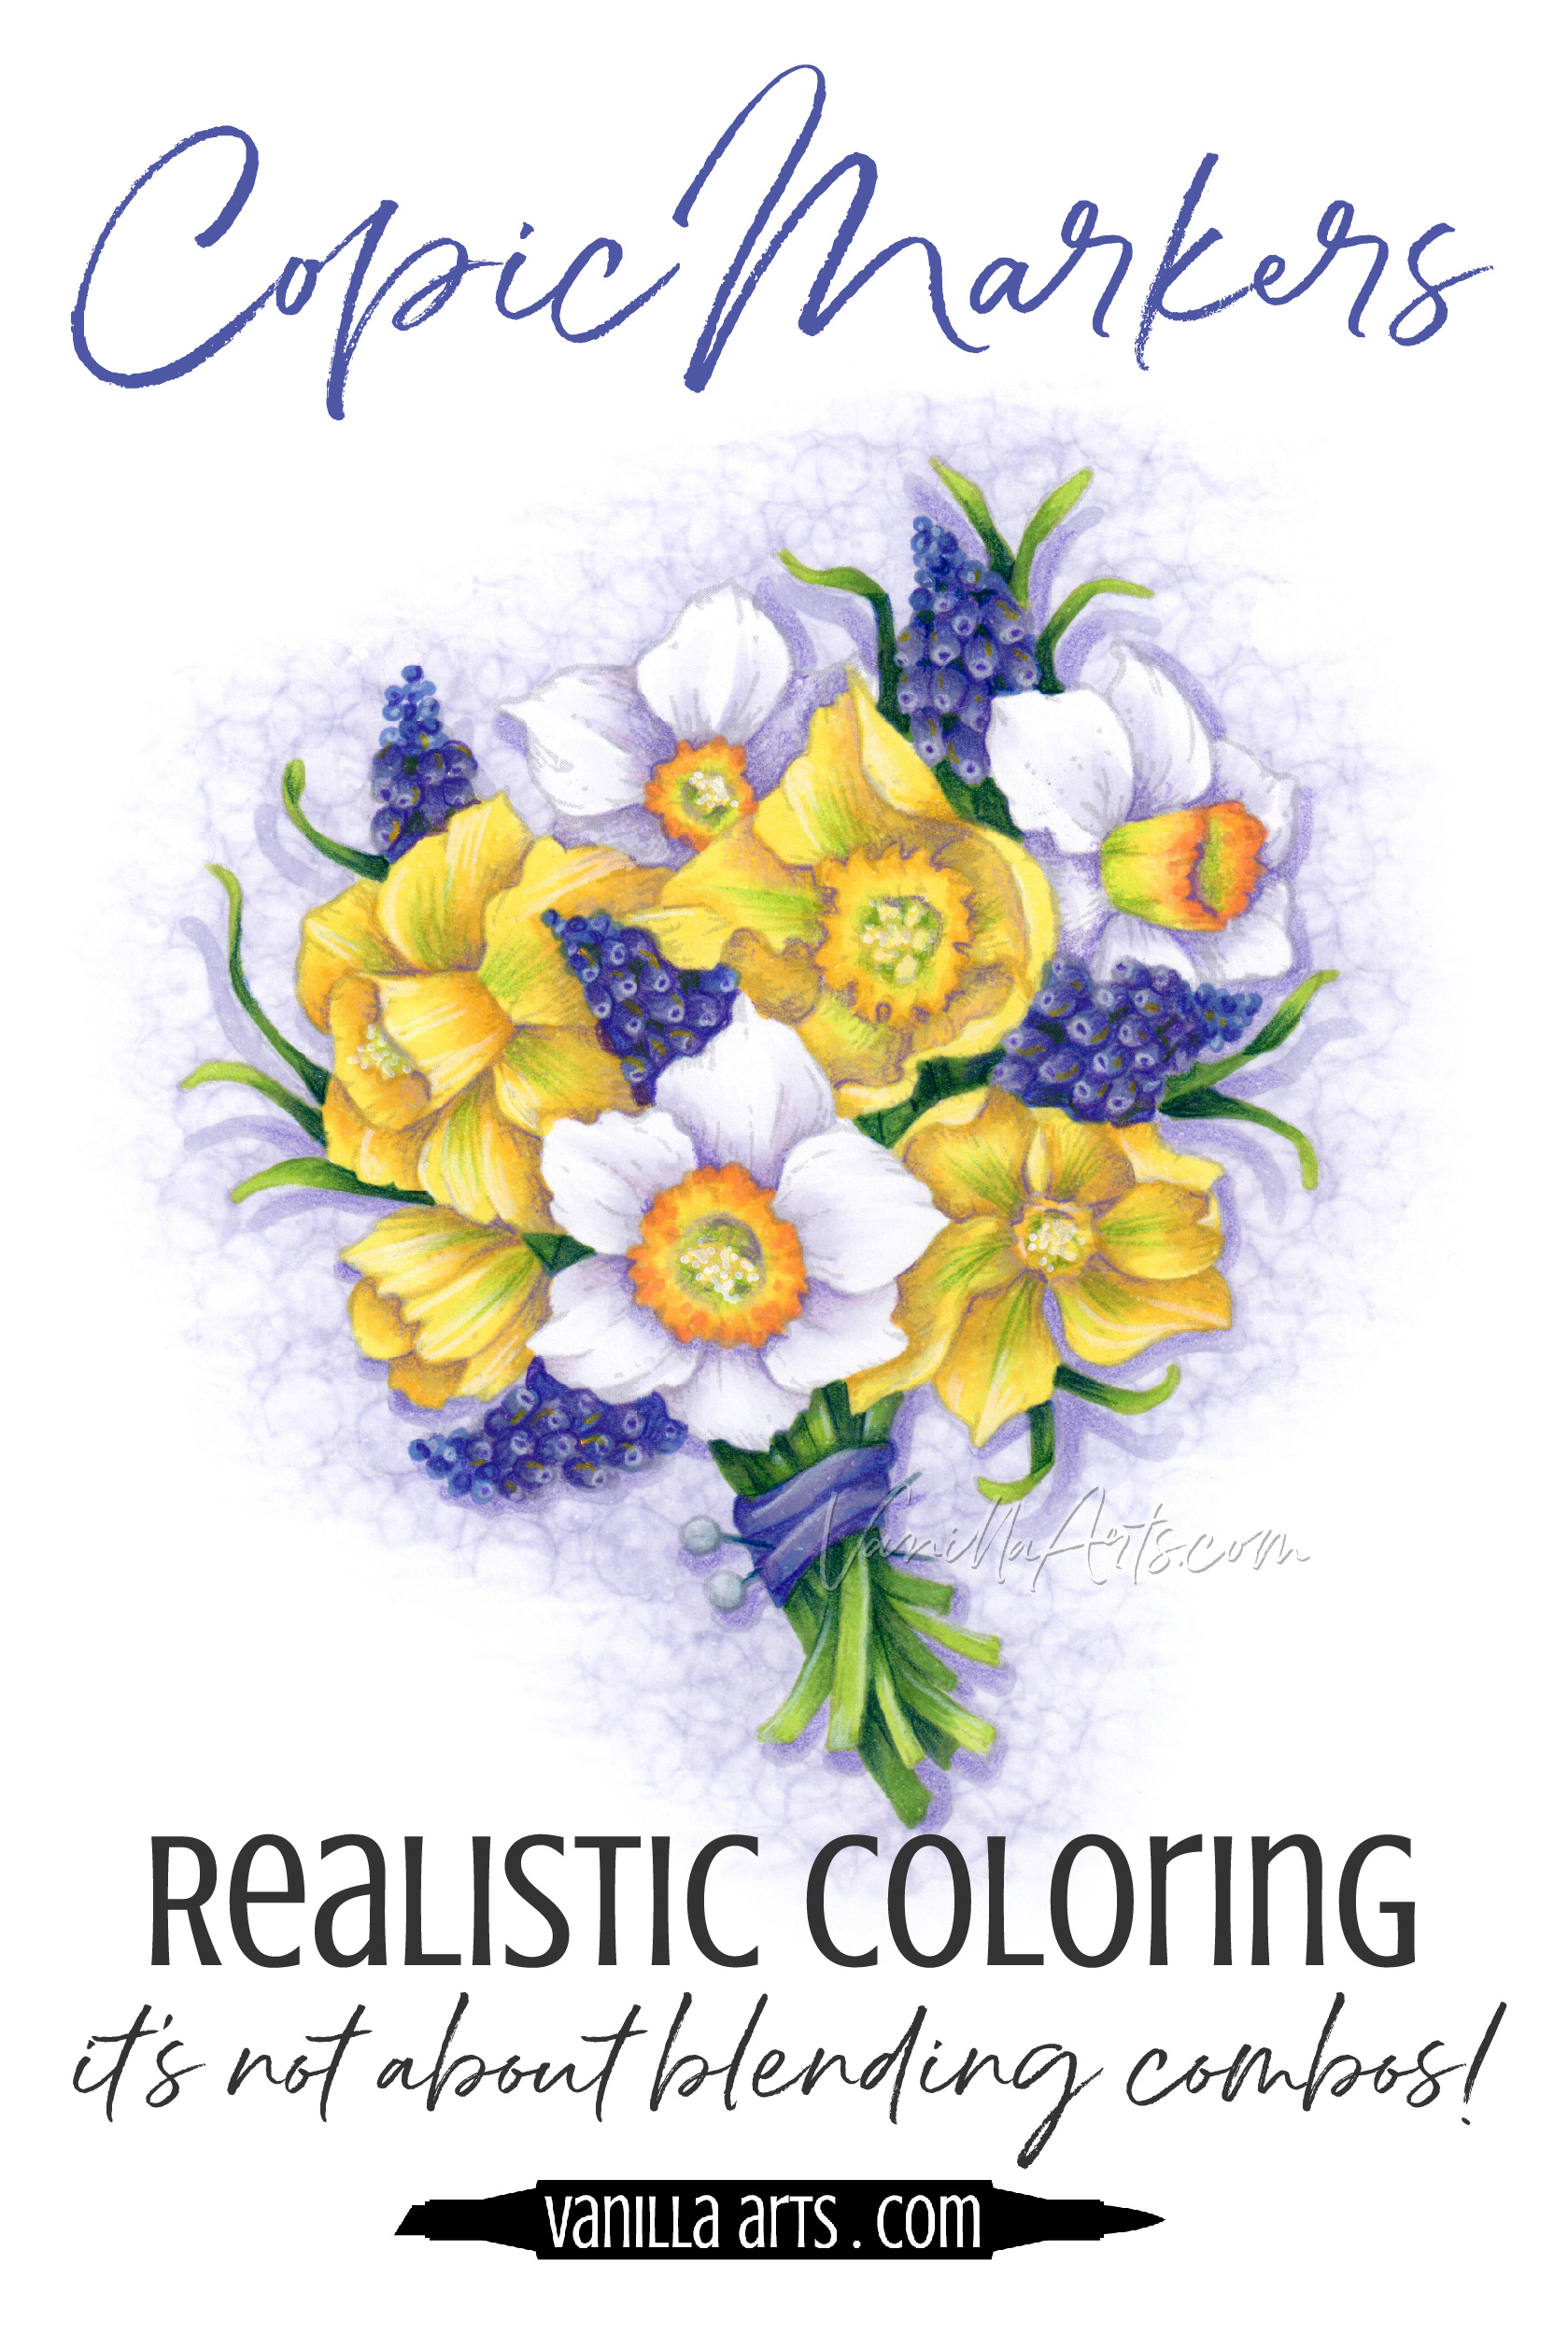 Do you dream about coloring realistic botanicals with Copic Markers? Research your flowers BEFORE you start coloring for added depth, dimension and realism. | VanillaArts.com | #copic #adultcoloring #howtocolor